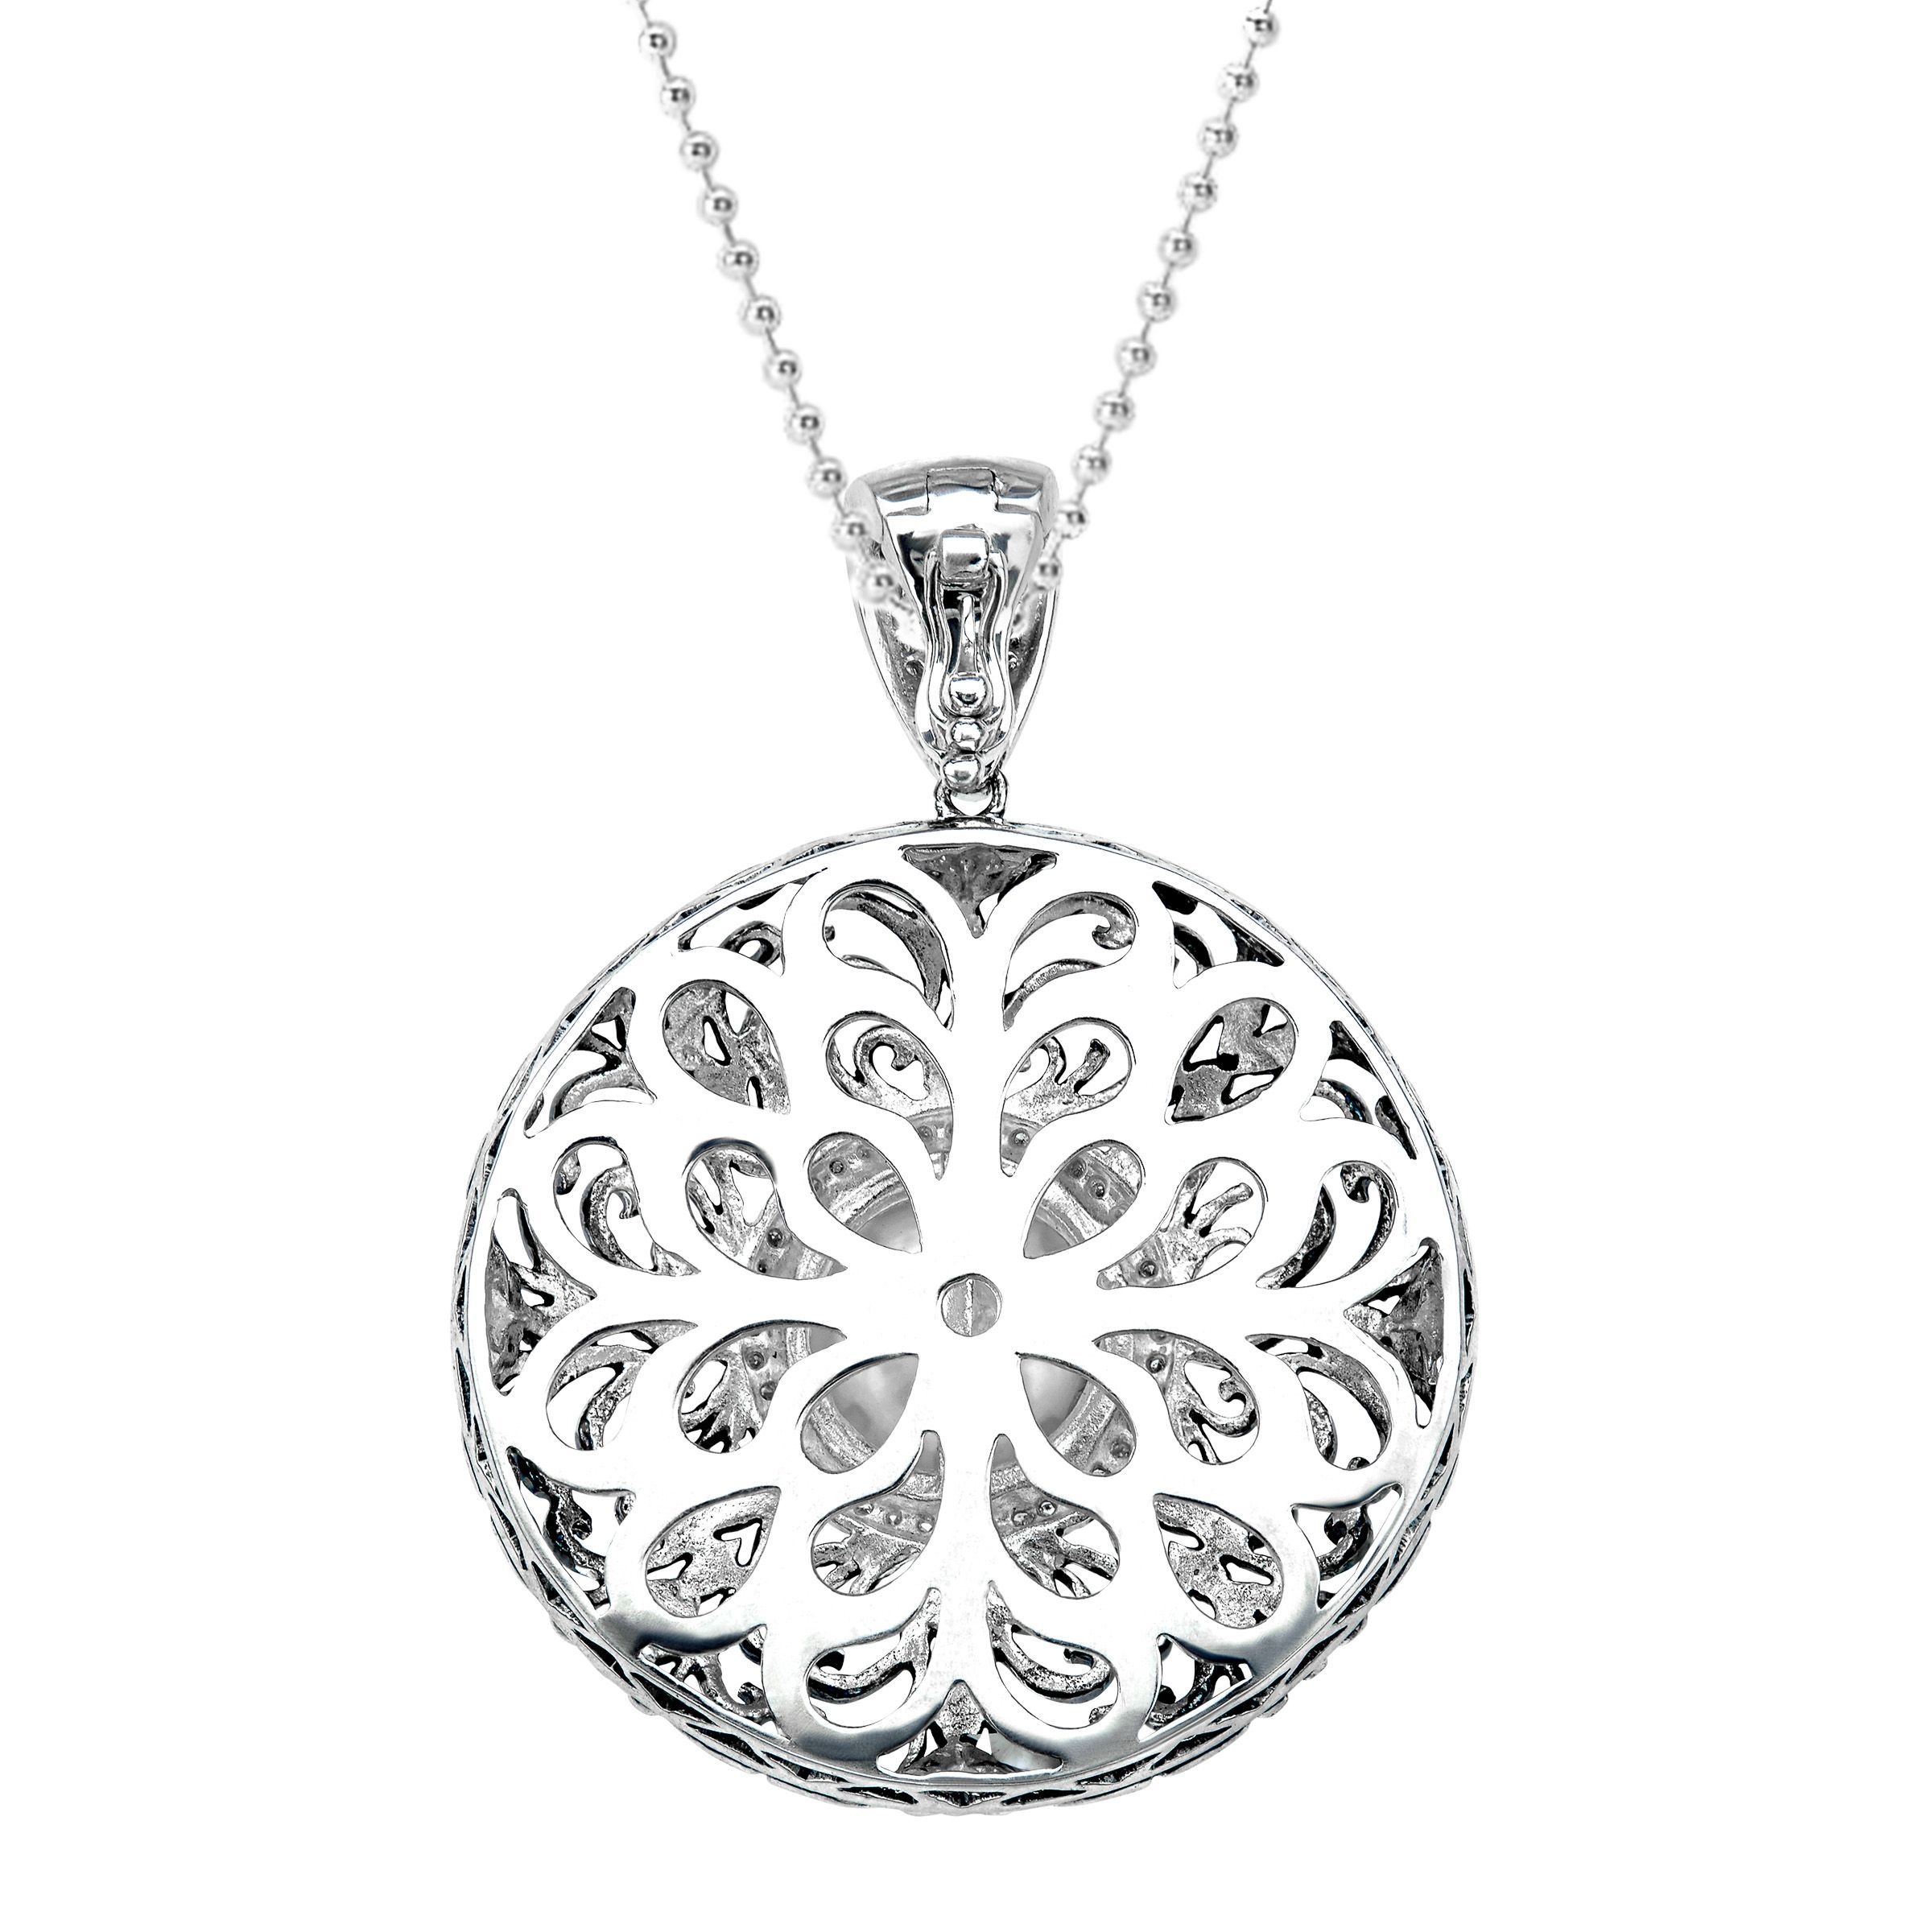 dsc necklace silver madamlili medallion plated english true pendant index dandelion